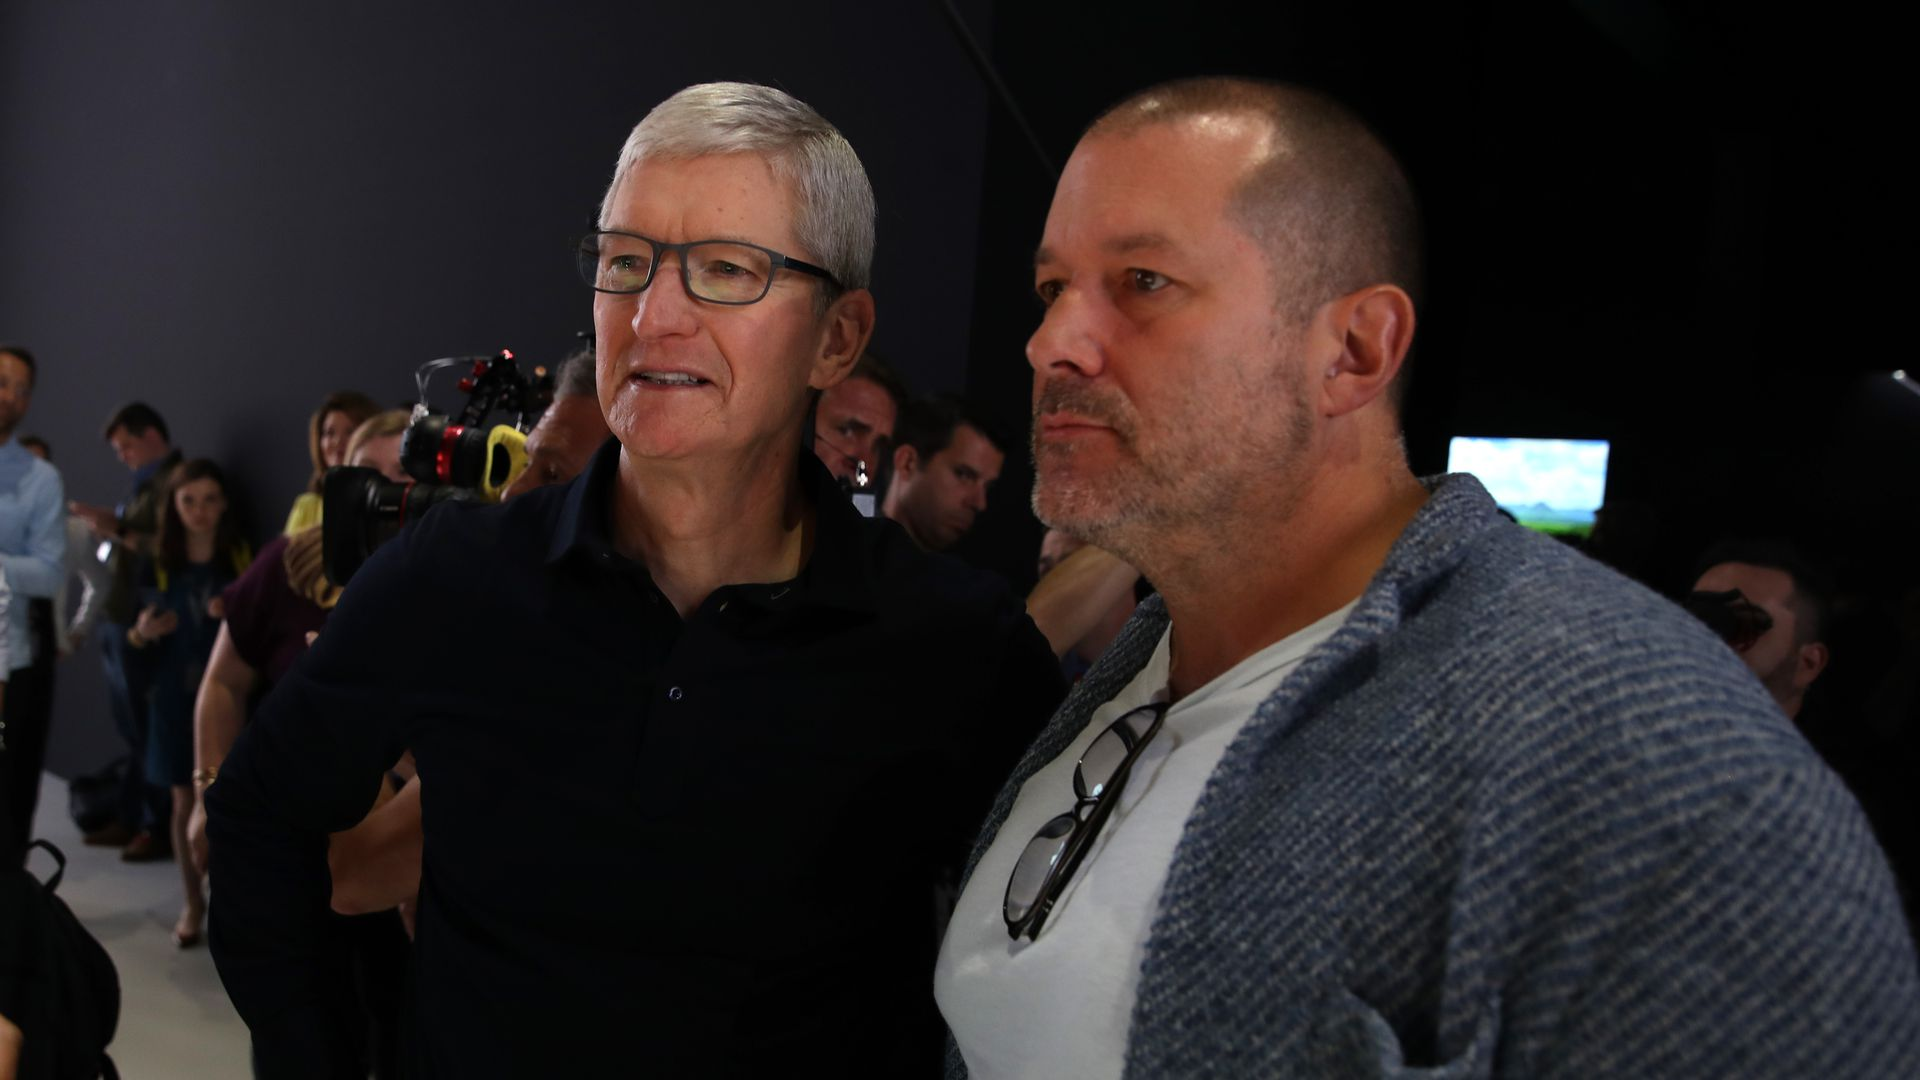 Tim Cook and Jony Ive